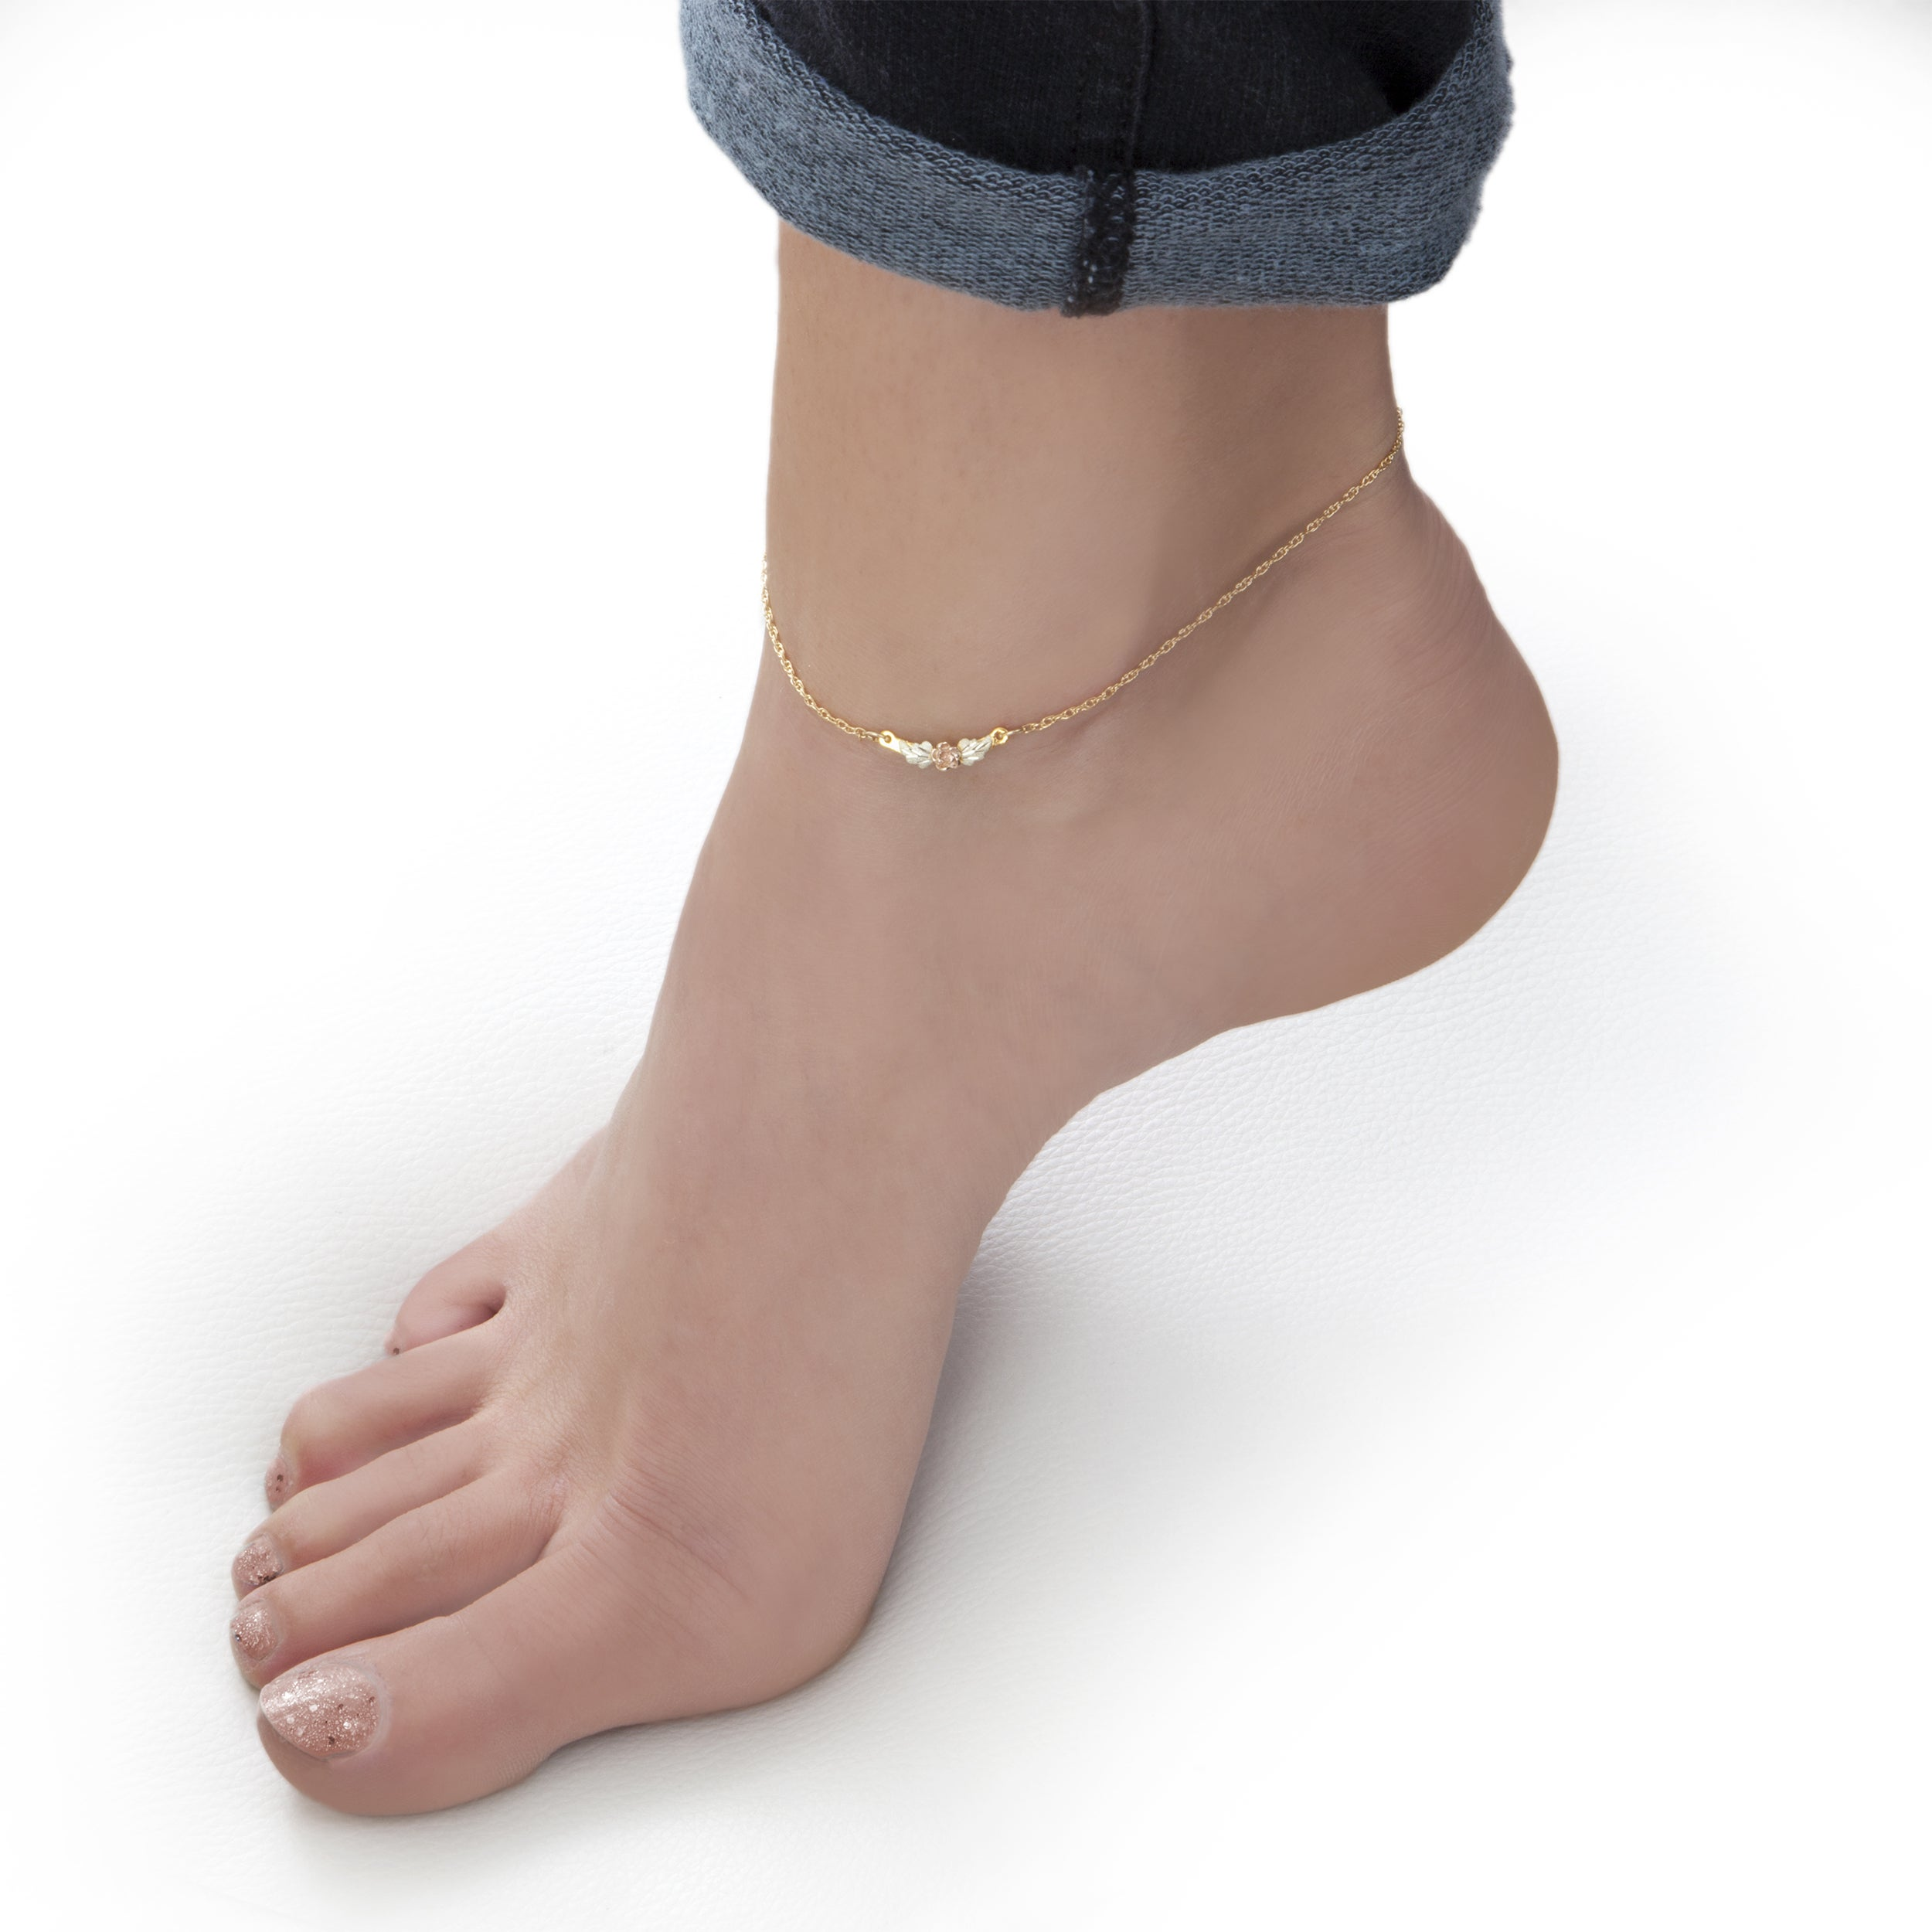 bracelets anklet pictures step cool ankle to with how wikihow make